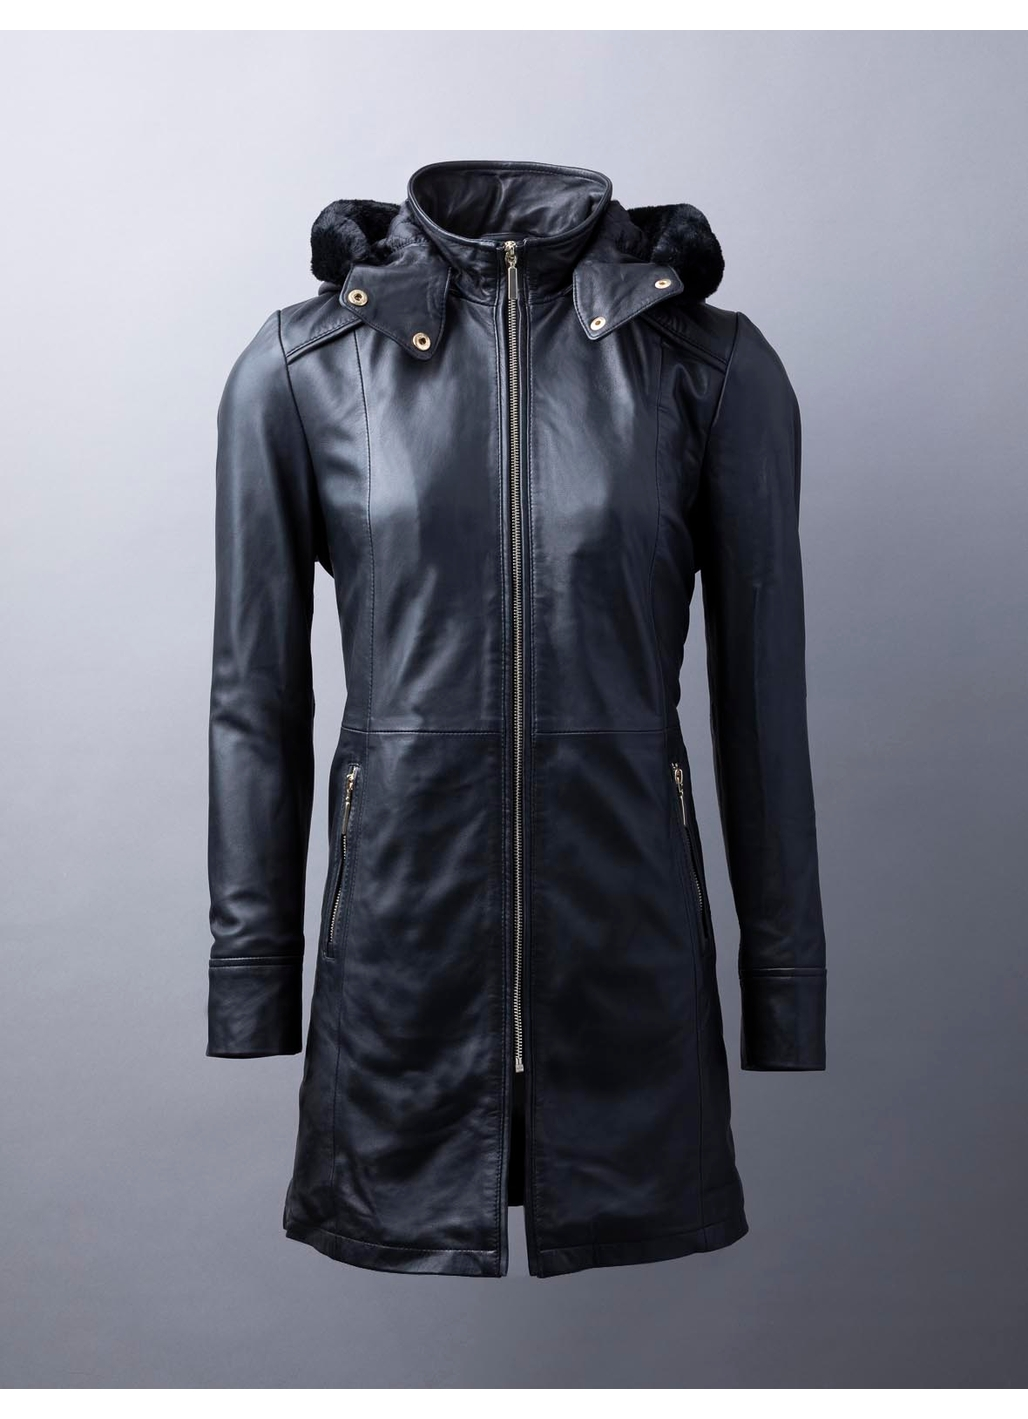 Rydalwater Leather Hooded Leather Coat in Black